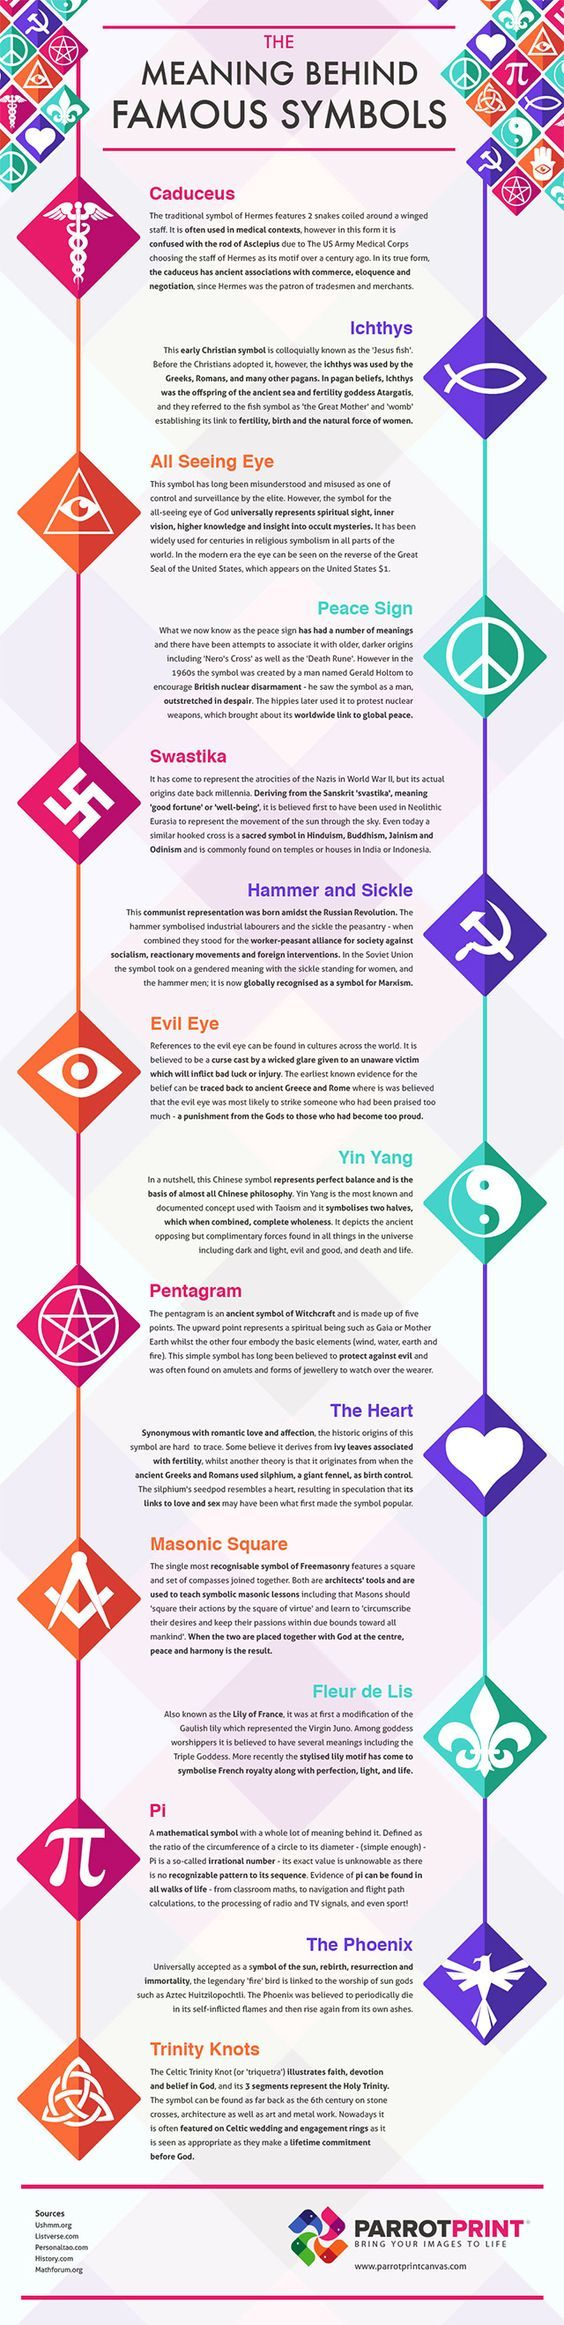 Find Out The Meaning Behind Famous Symbols Including The Likes Of